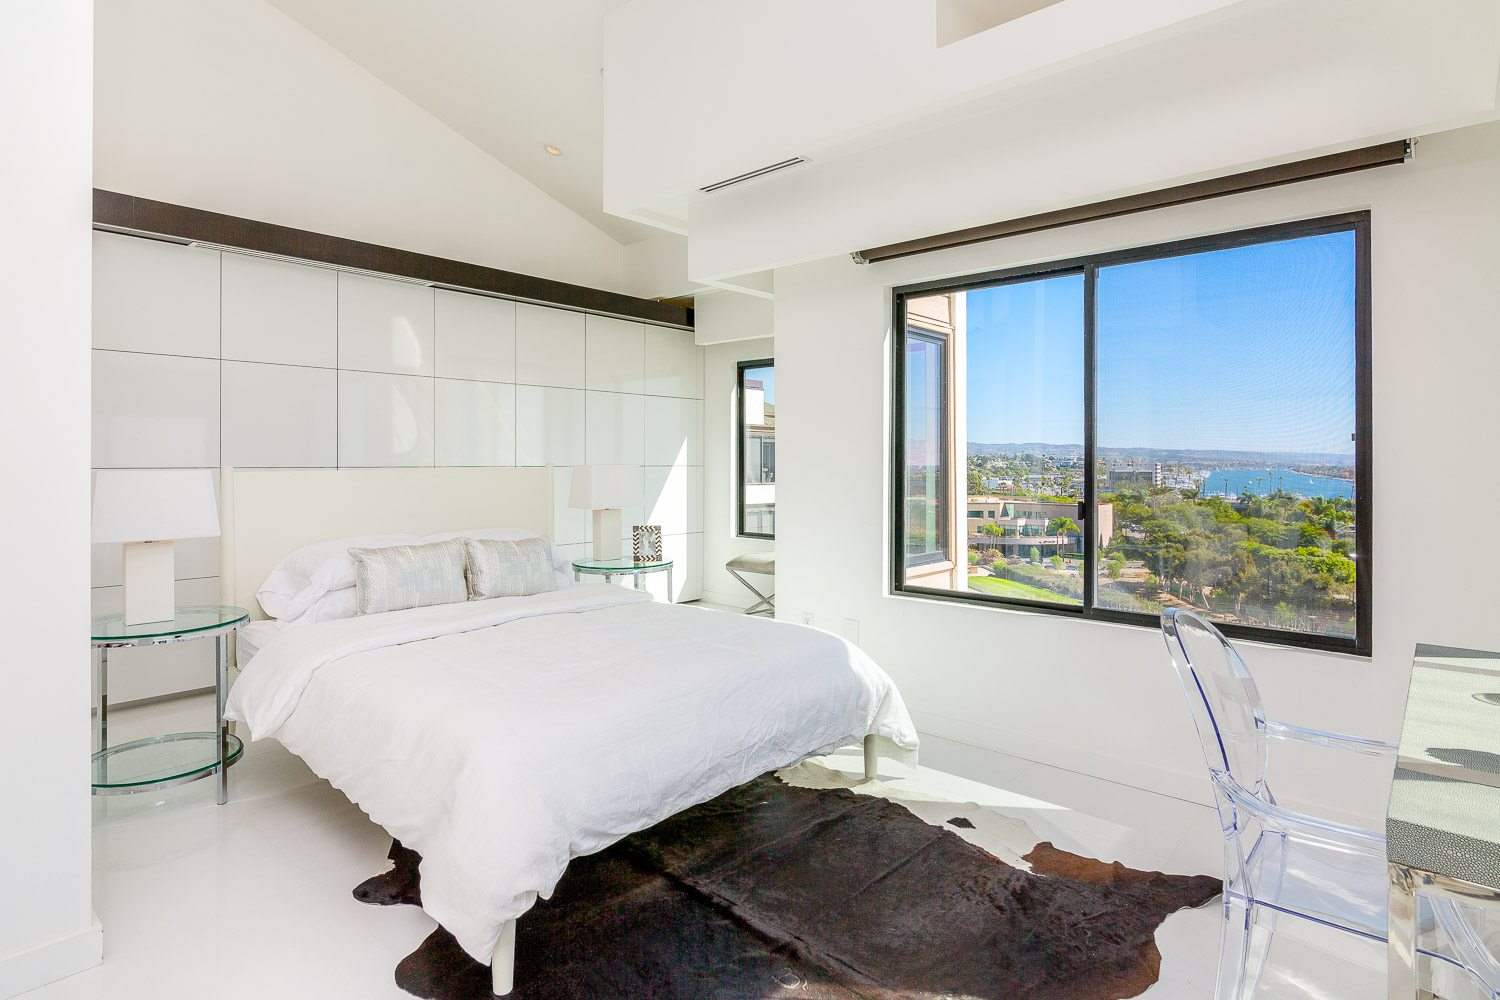 orange county real estate photography all white bedroom oc real estate photography amazing all white bedroom newport beach